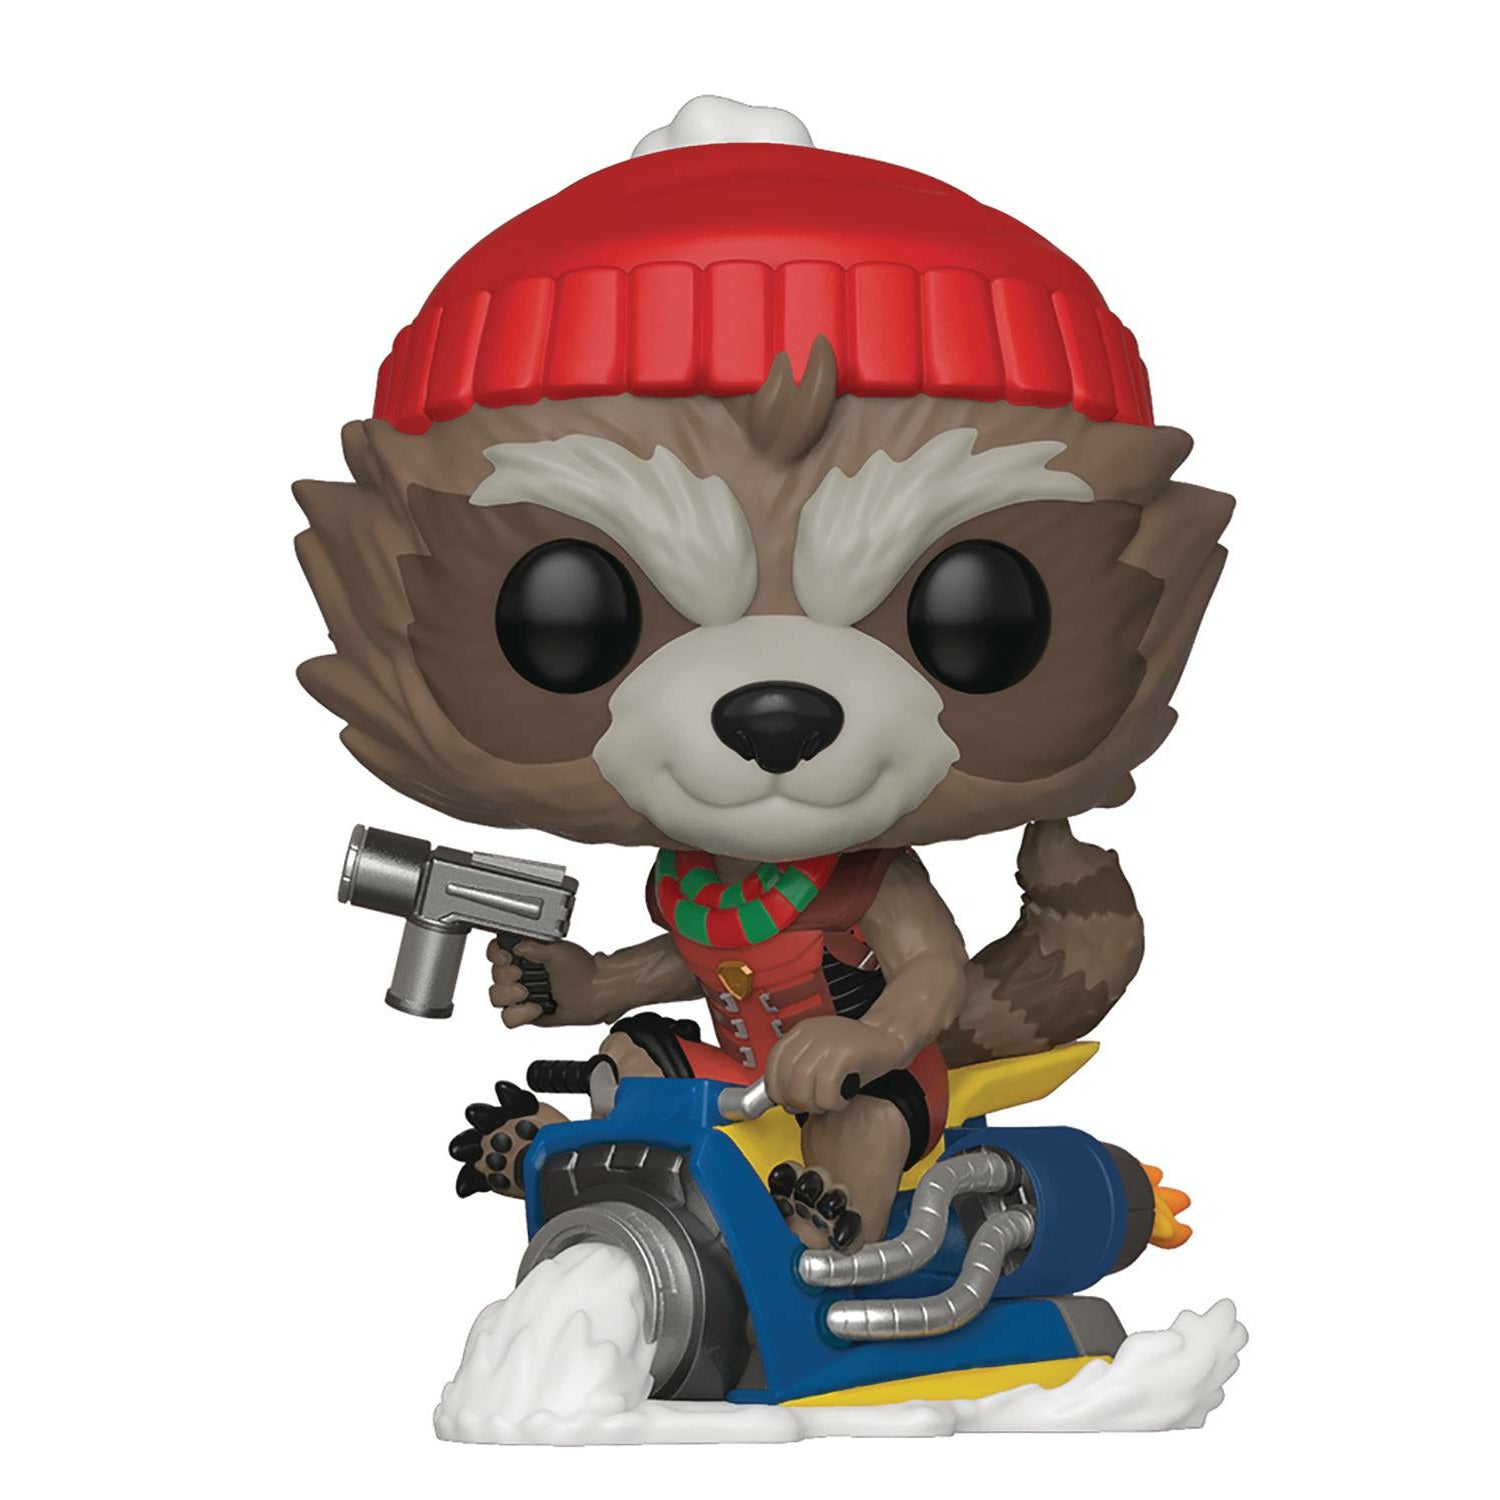 Marvel Rocket Raccoon on Sled Holiday Bobblehead Pop! Vinyl Figure